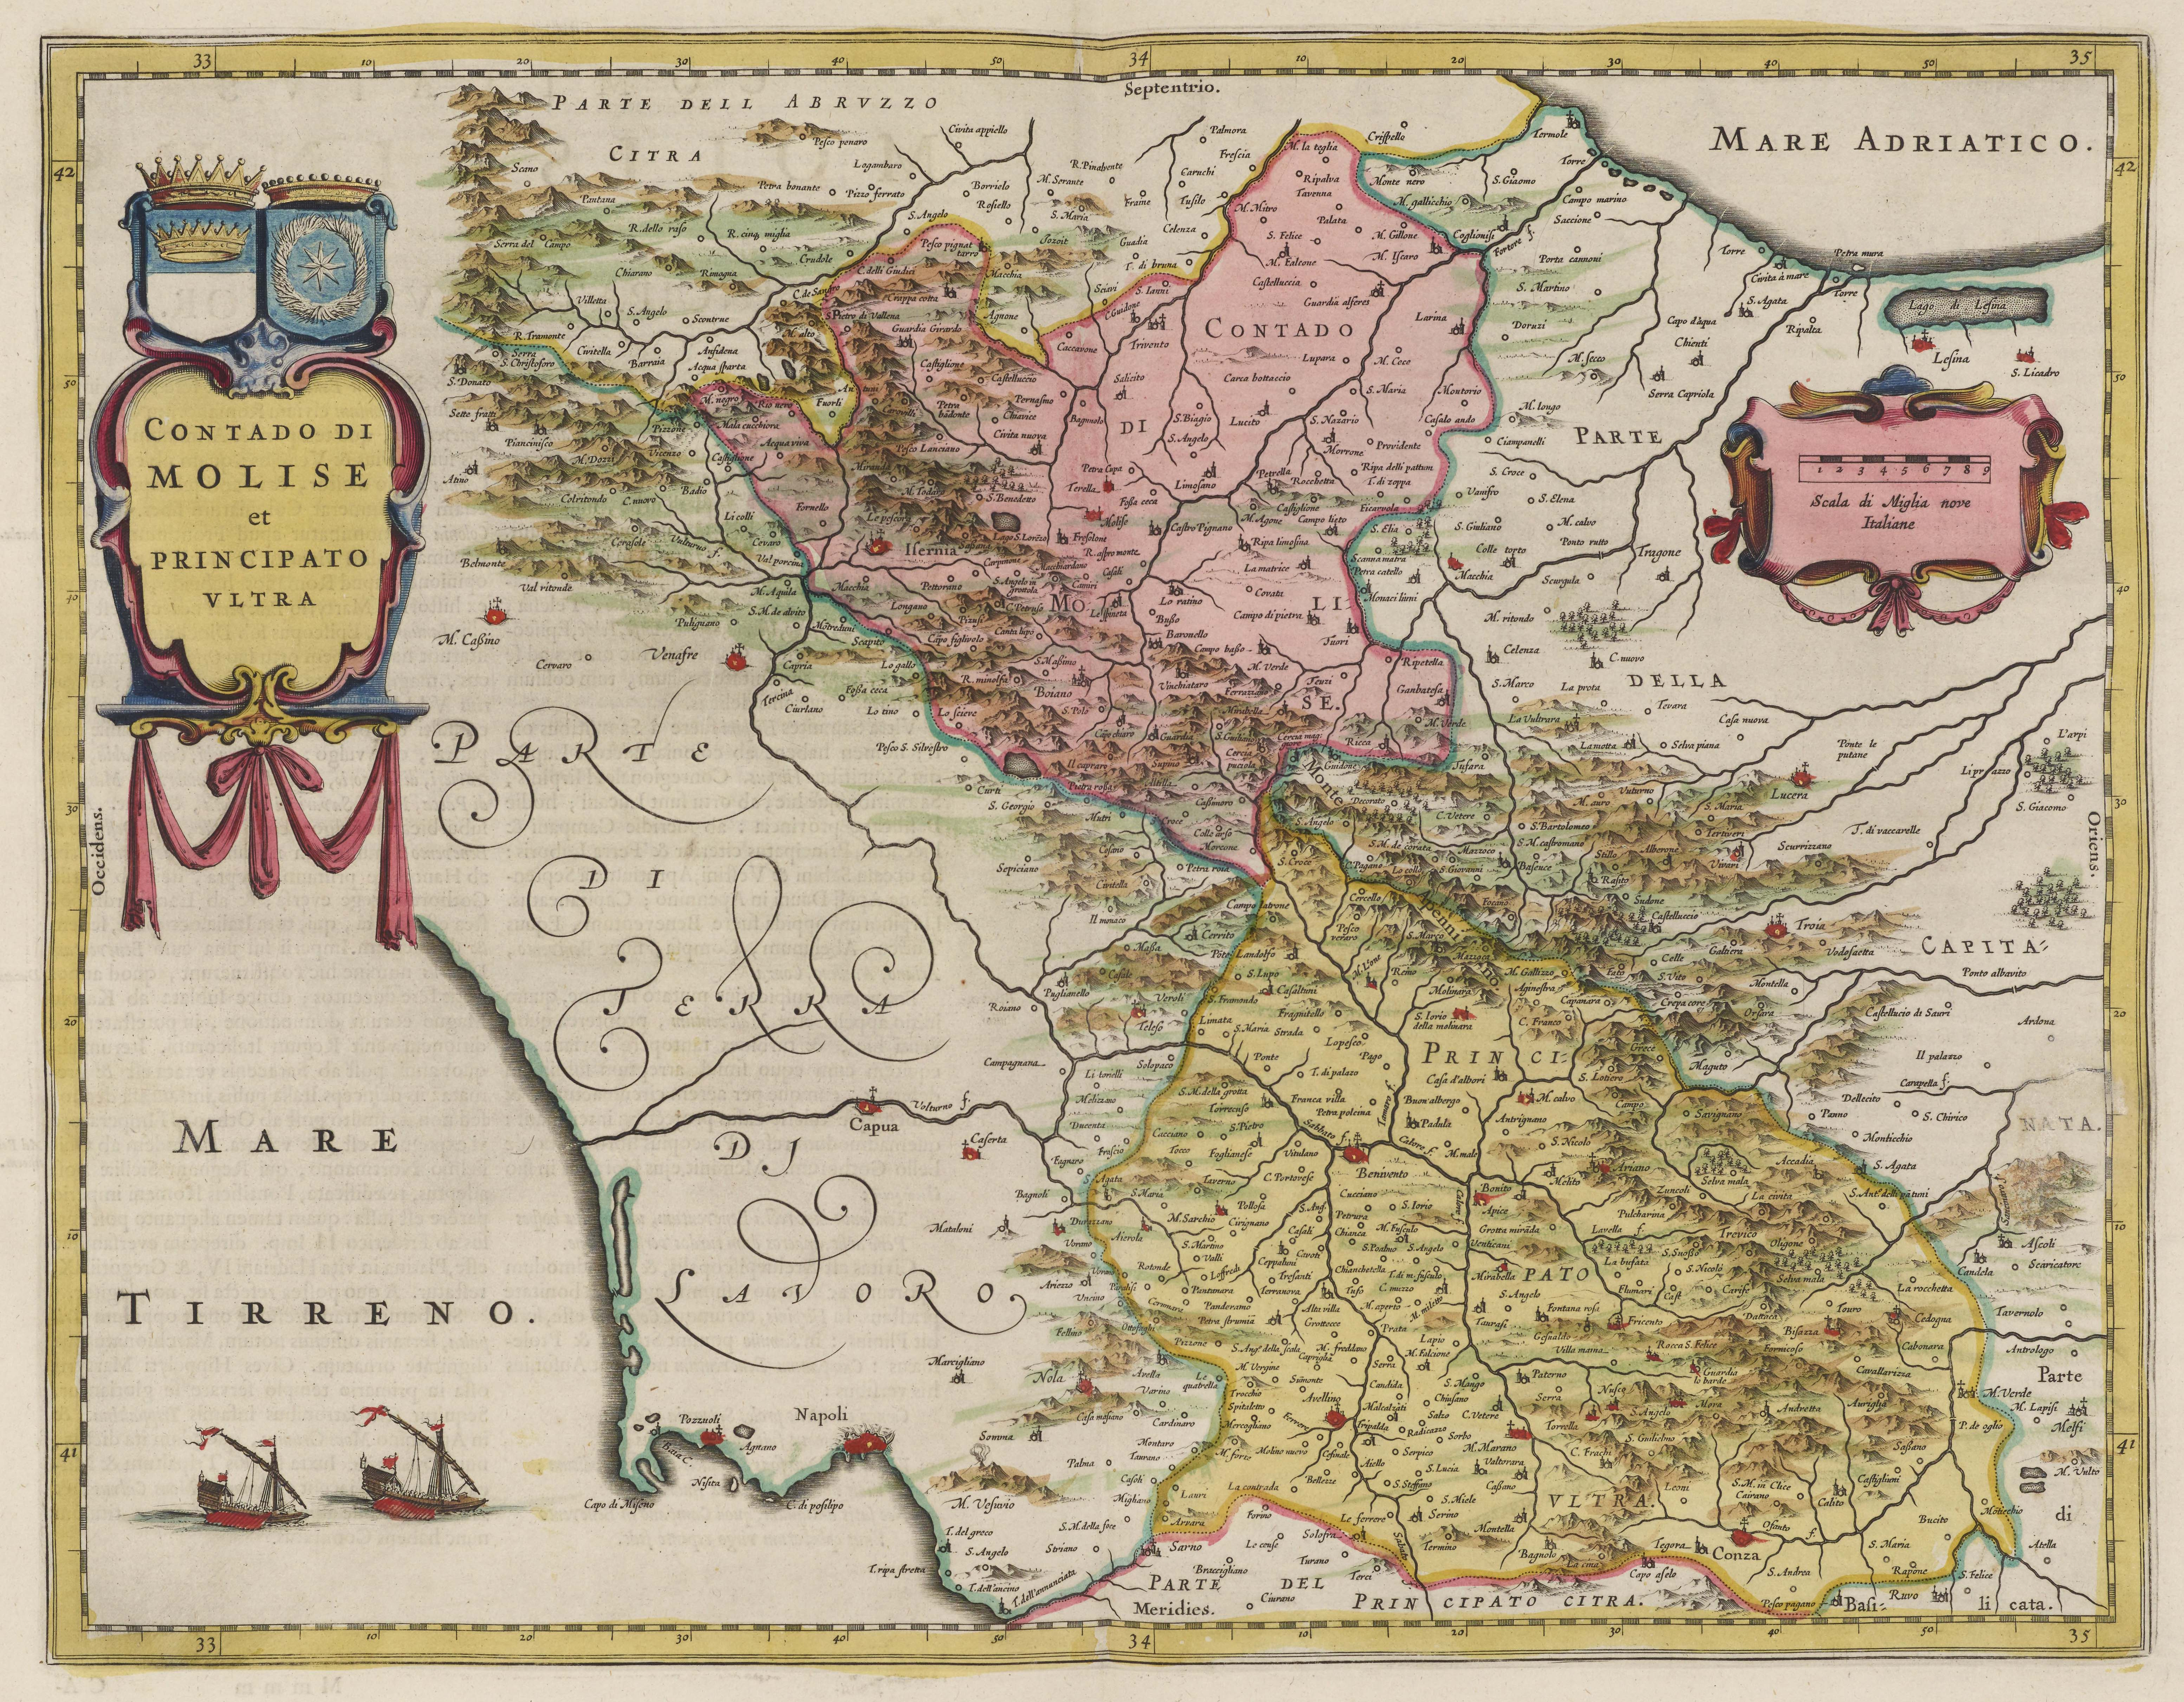 Blaeu Atlas Maior 1662 Contado Di Molise et Principato Vltra © David Rumsey Historical Map Collection and Cultural Documents